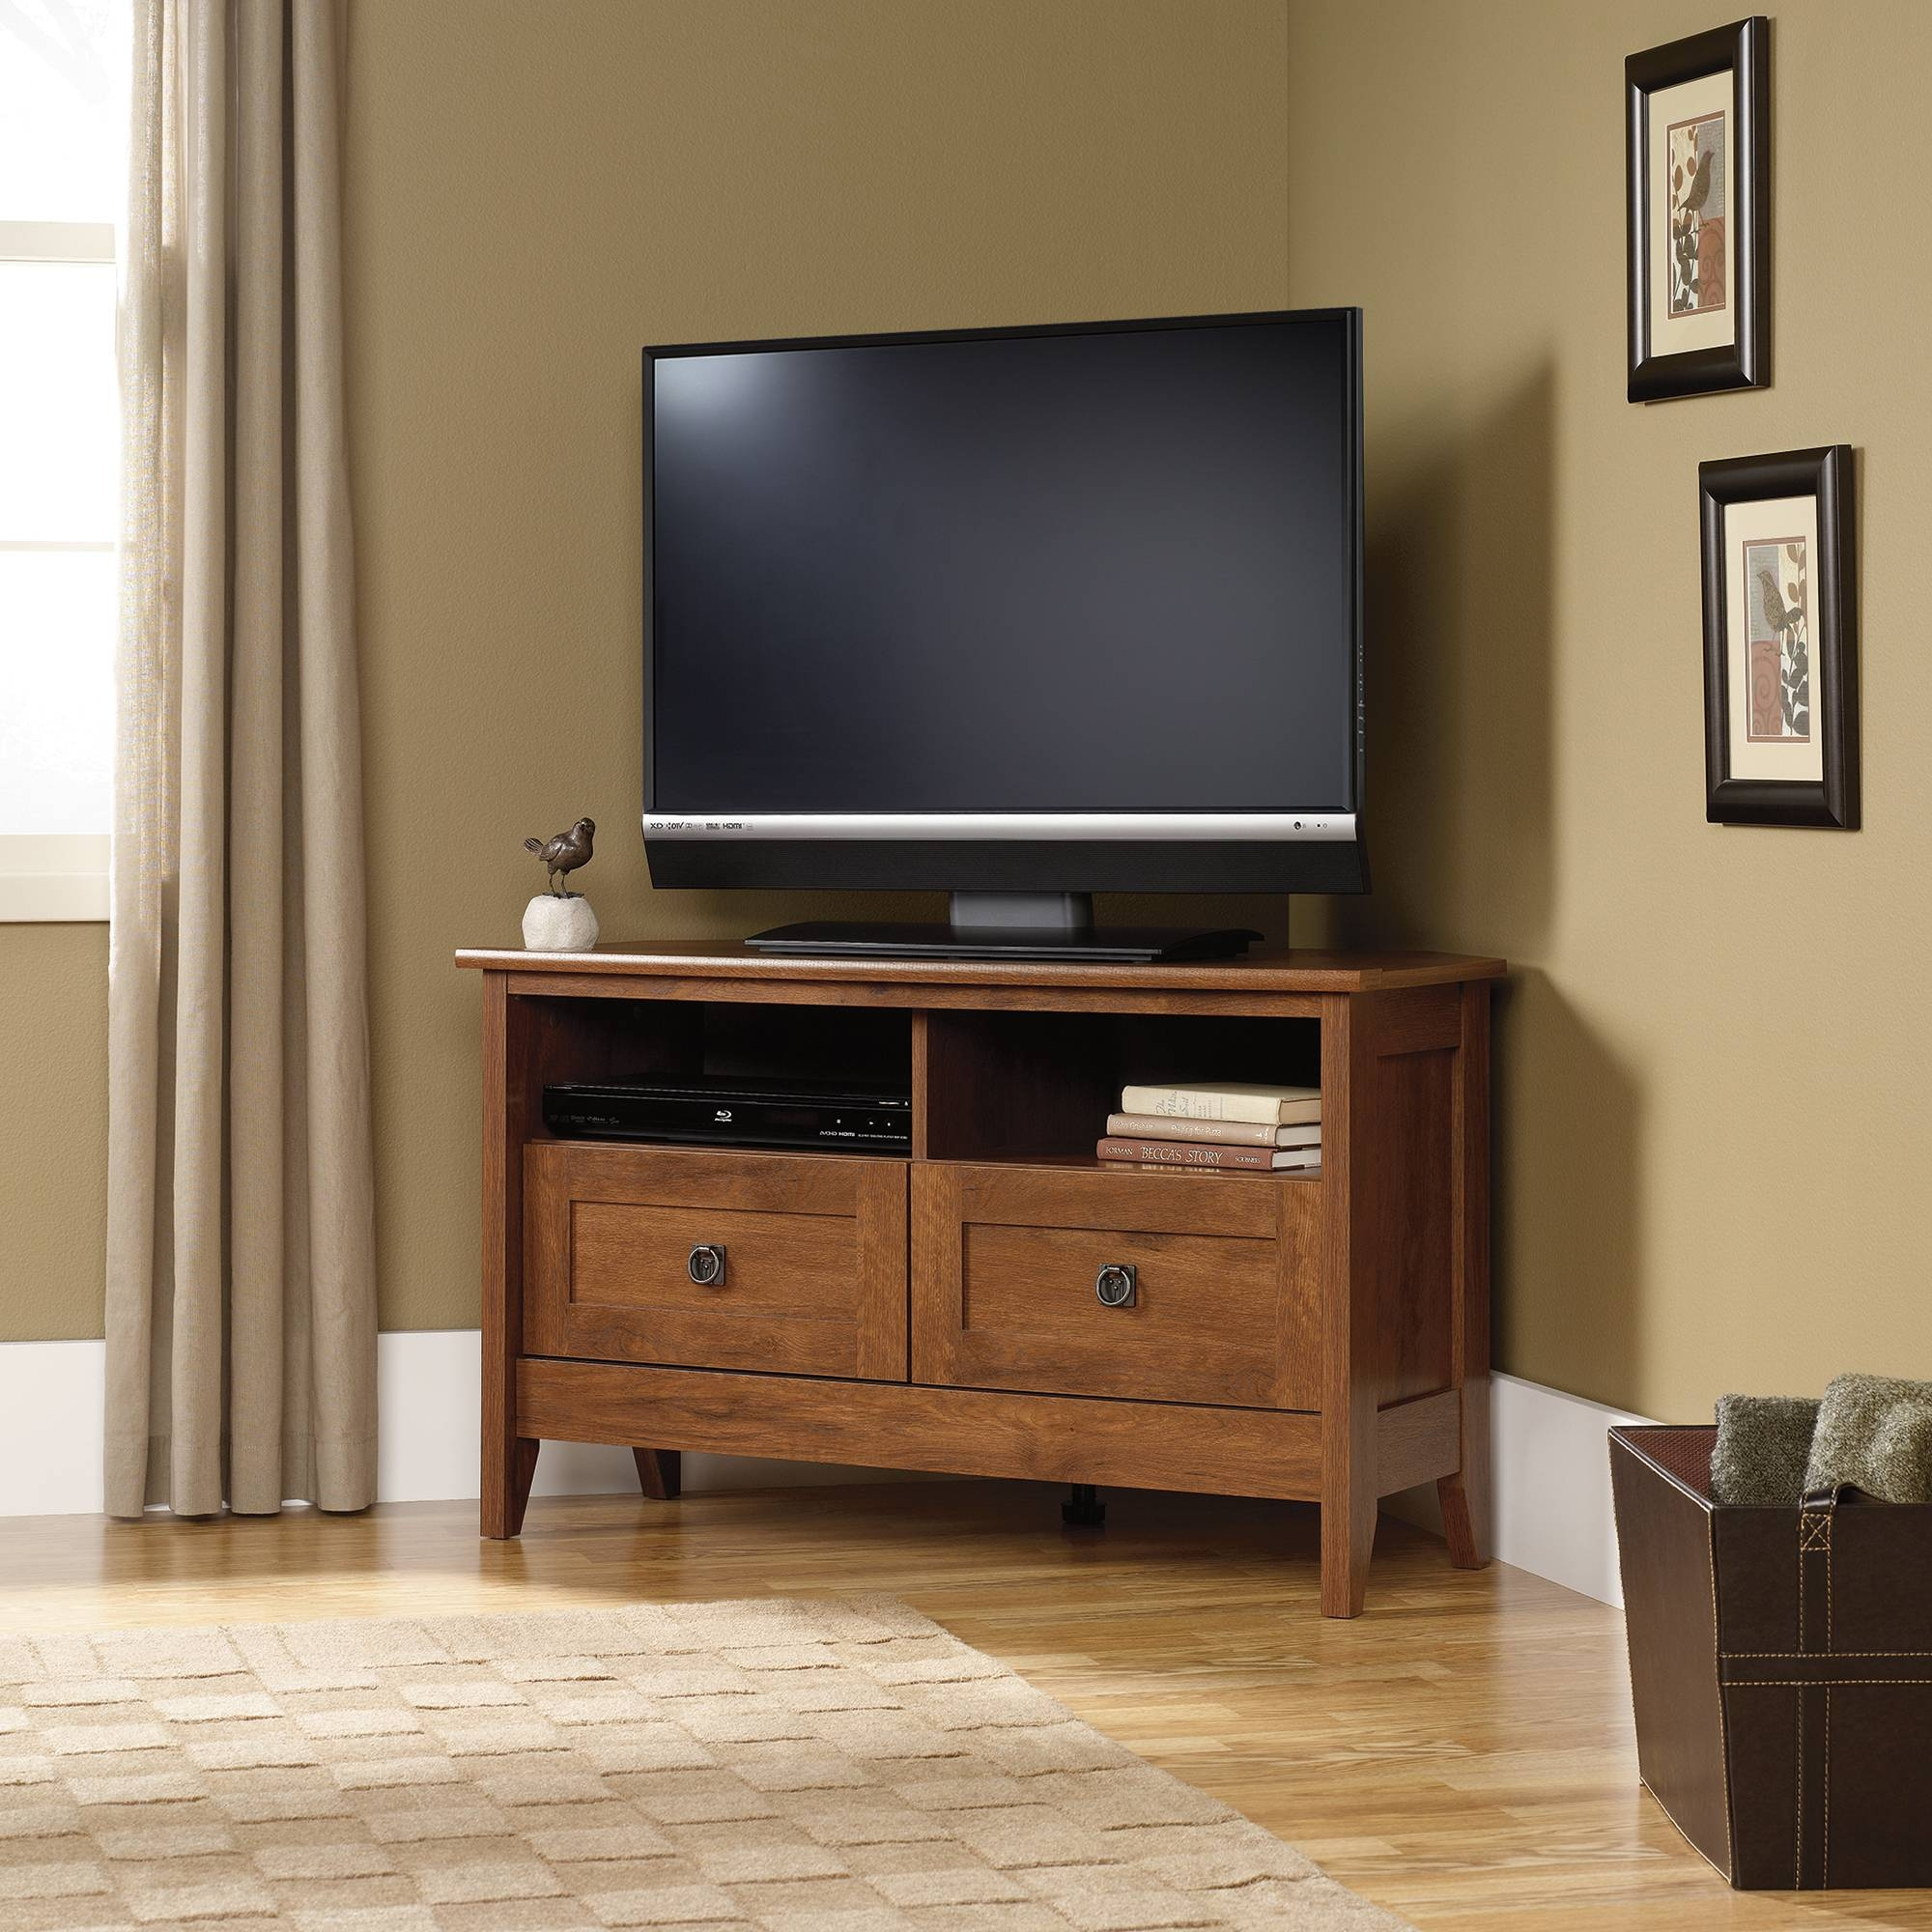 Tremendous Flat Screens New Teak Furnitures As Wells As Flat within Cheap Corner Tv Stands For Flat Screen (Image 11 of 15)